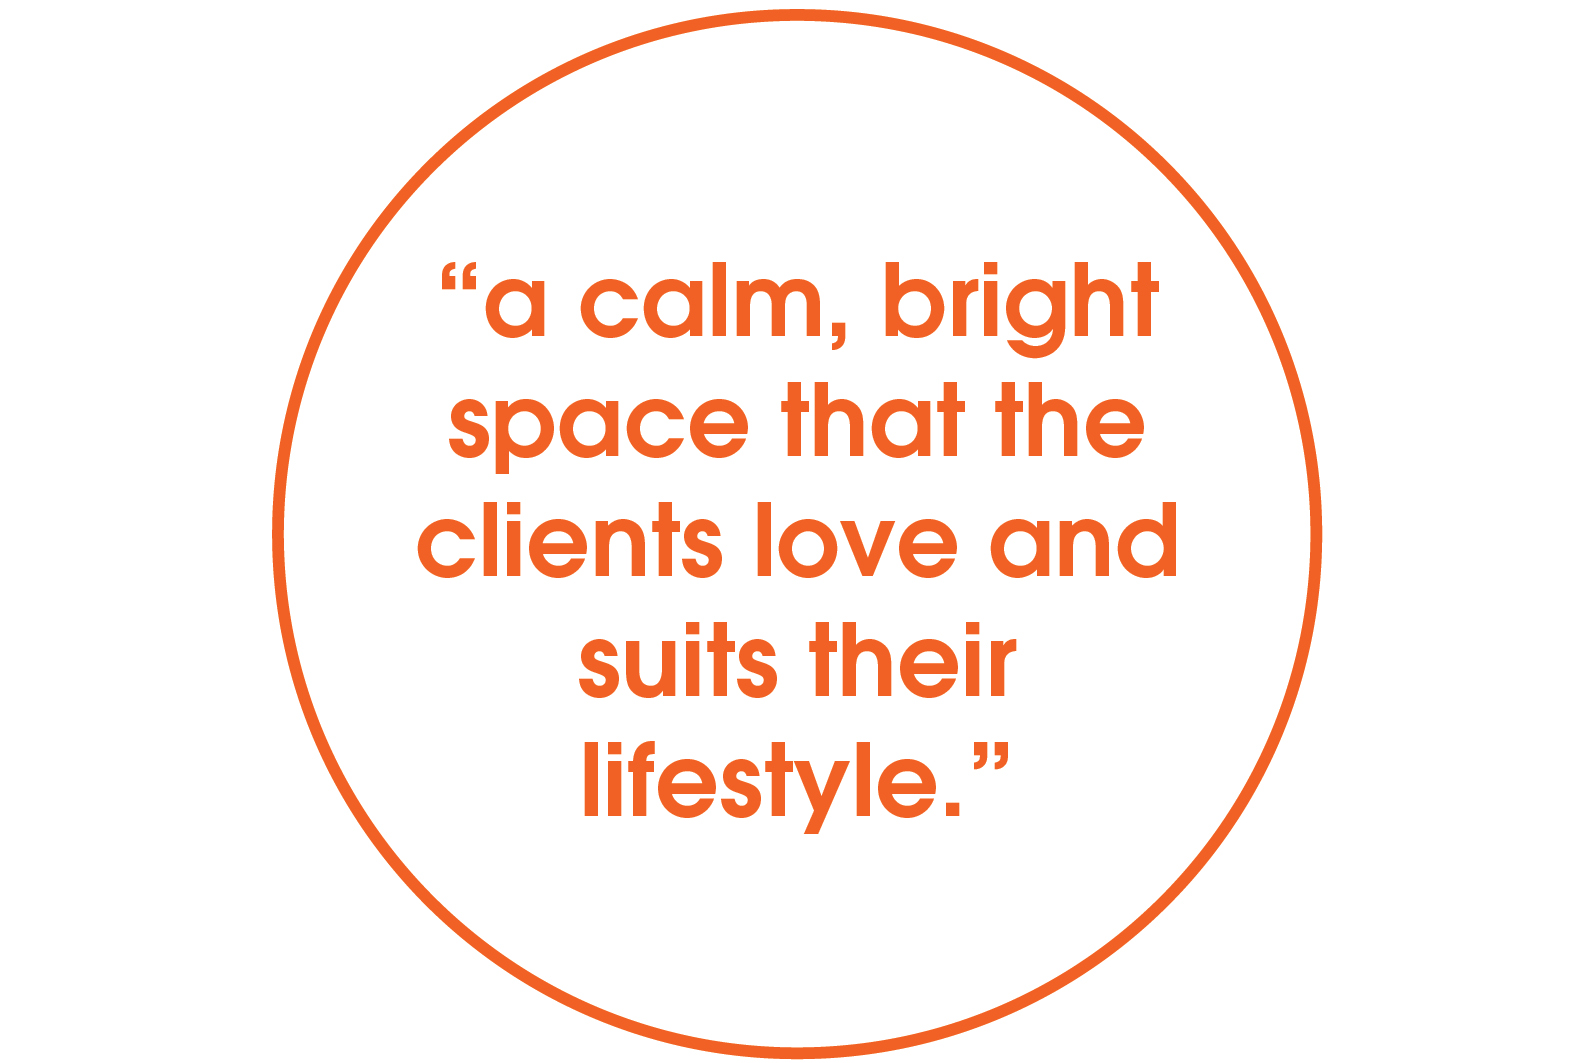 a calm bright space quote